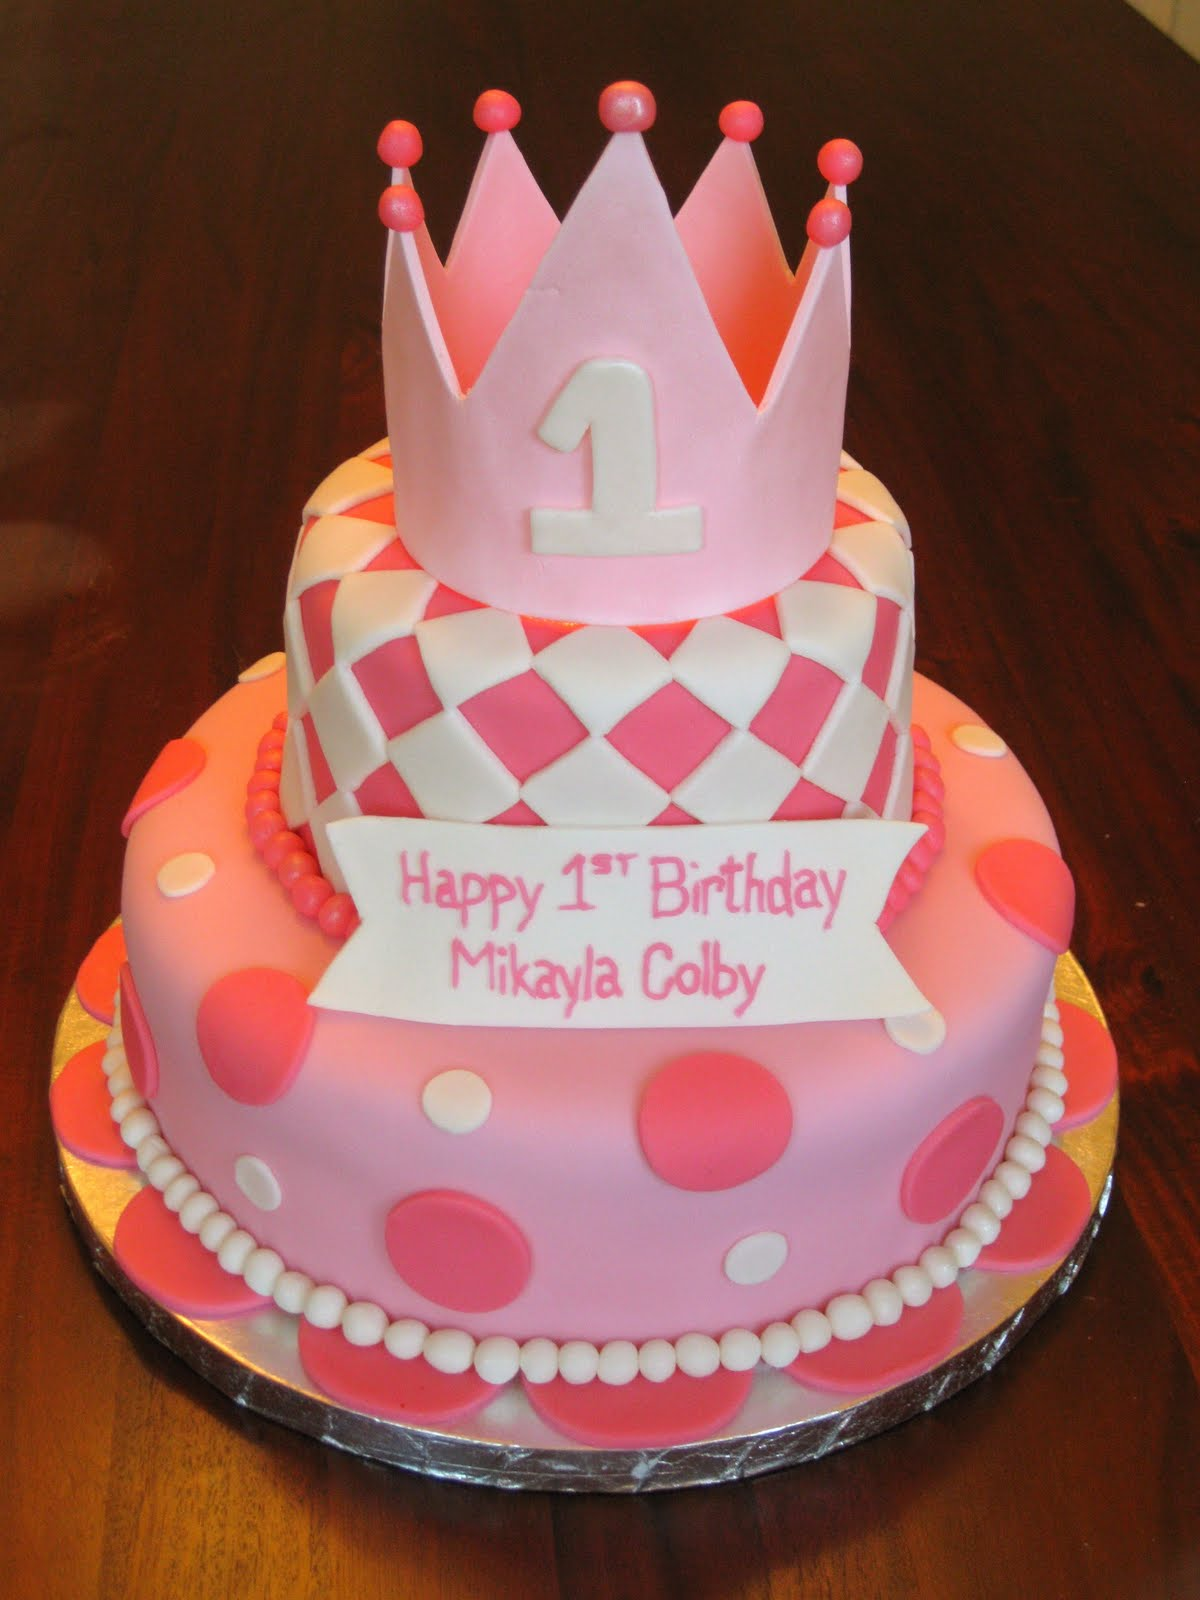 Marvelous Girls Custom Fondant Birthday Cakesbest Birthday Cakesbest Funny Birthday Cards Online Inifofree Goldxyz